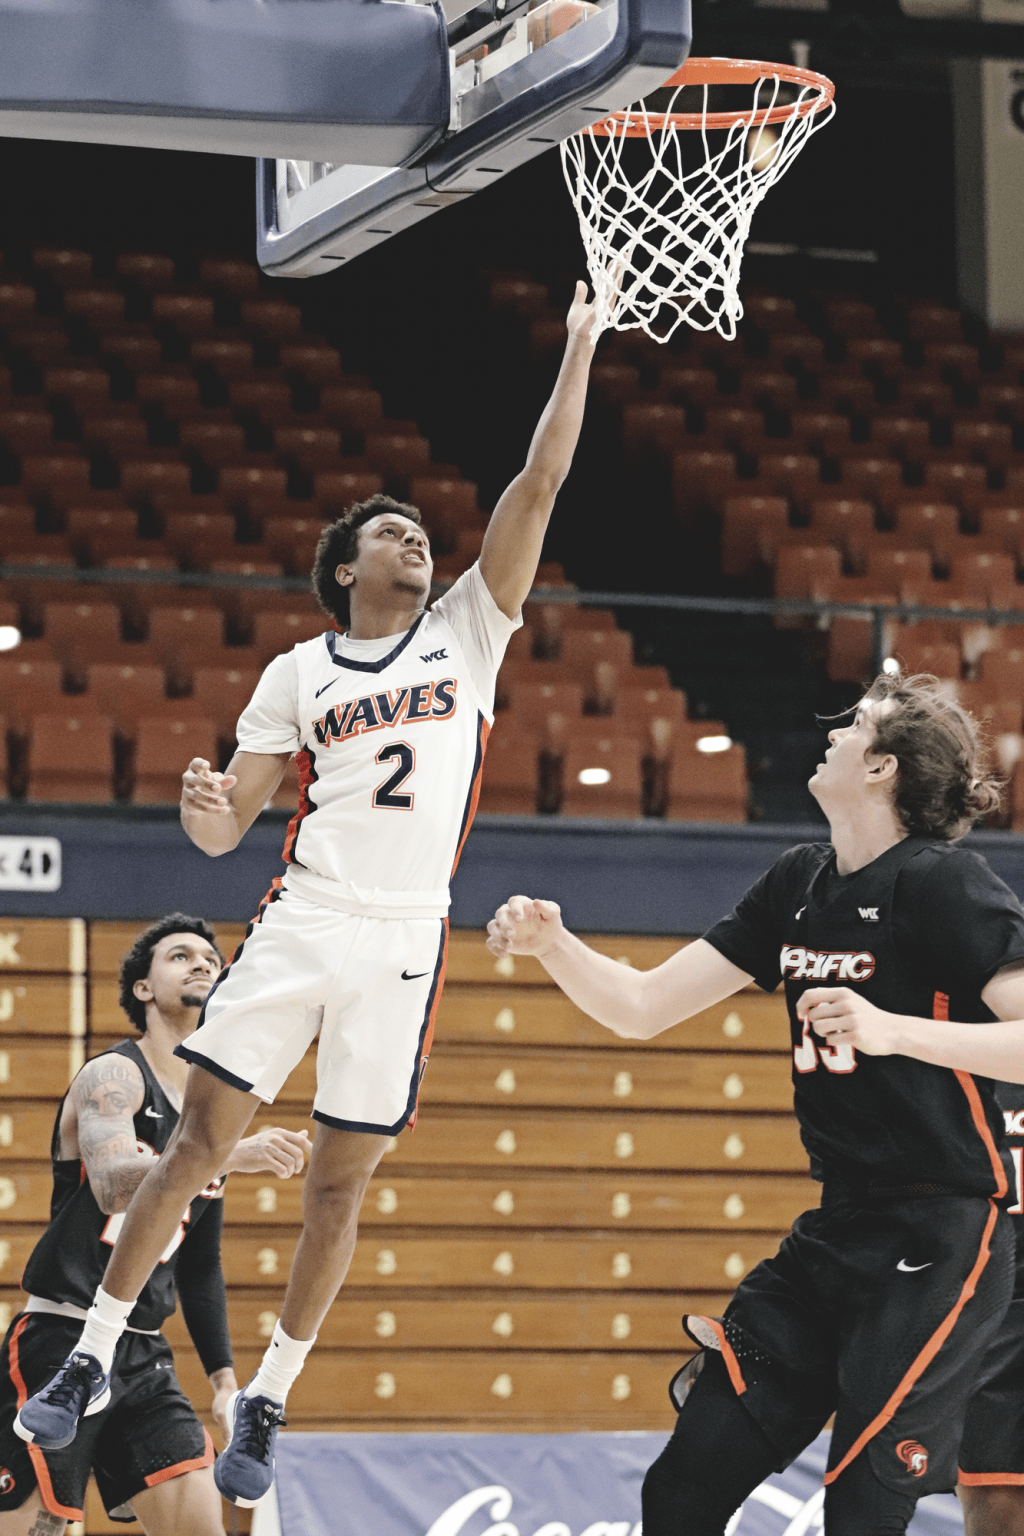 Junior guard Darryl Polk Jr. extends for a soft layup at the rim during the second half.